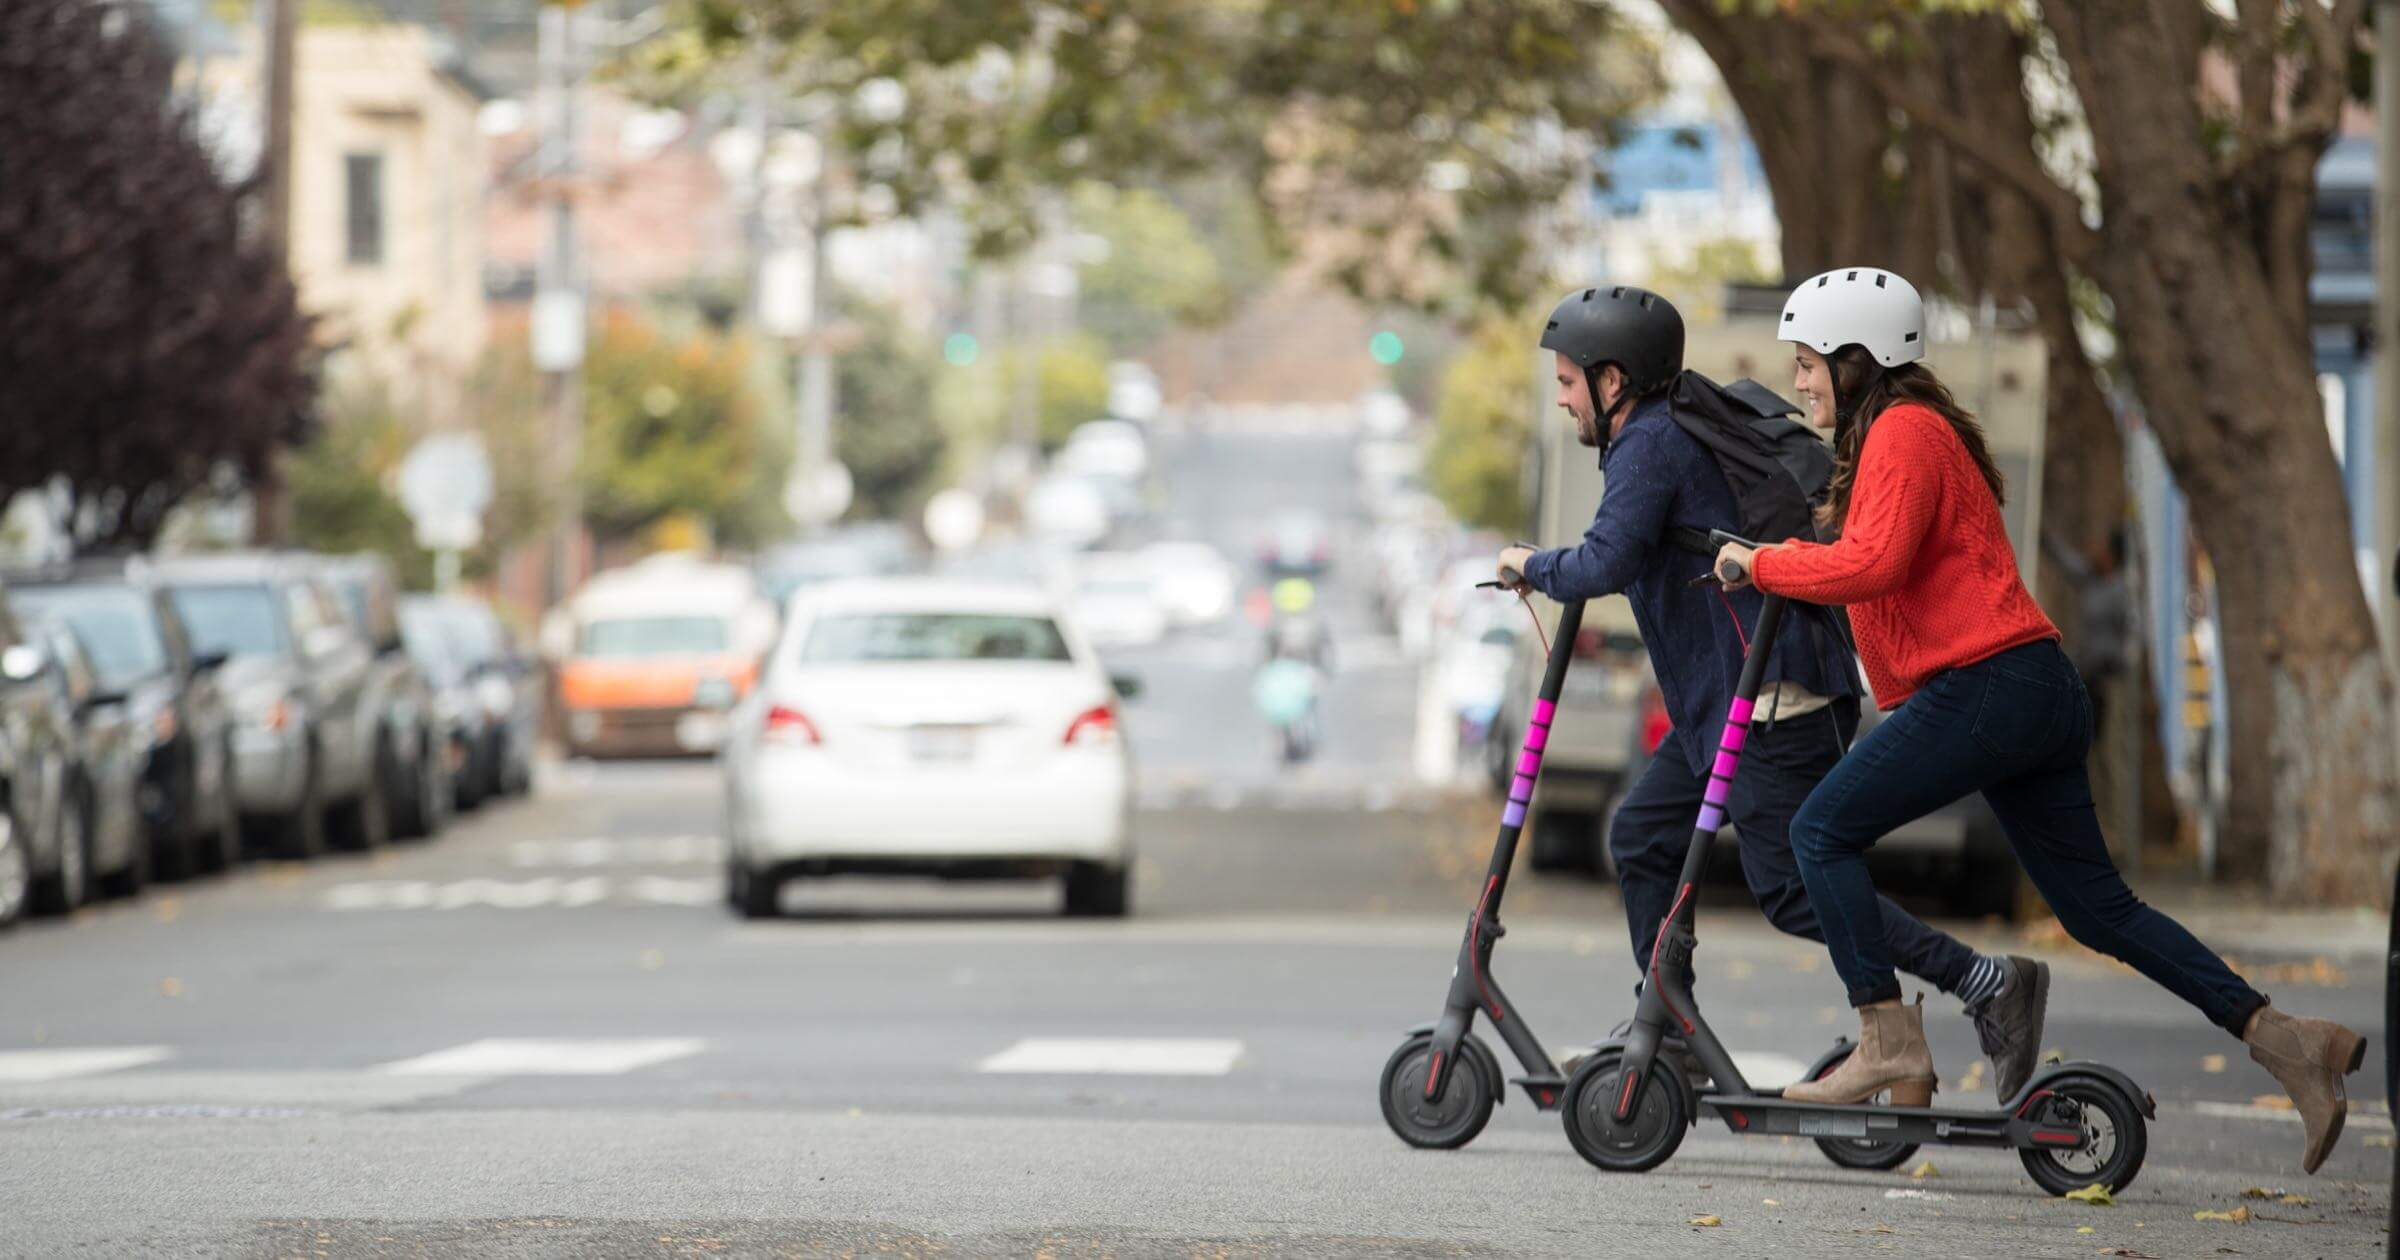 Lyft Shifts to Segway Scooters; Swappable Batteries and Docking System in the Works